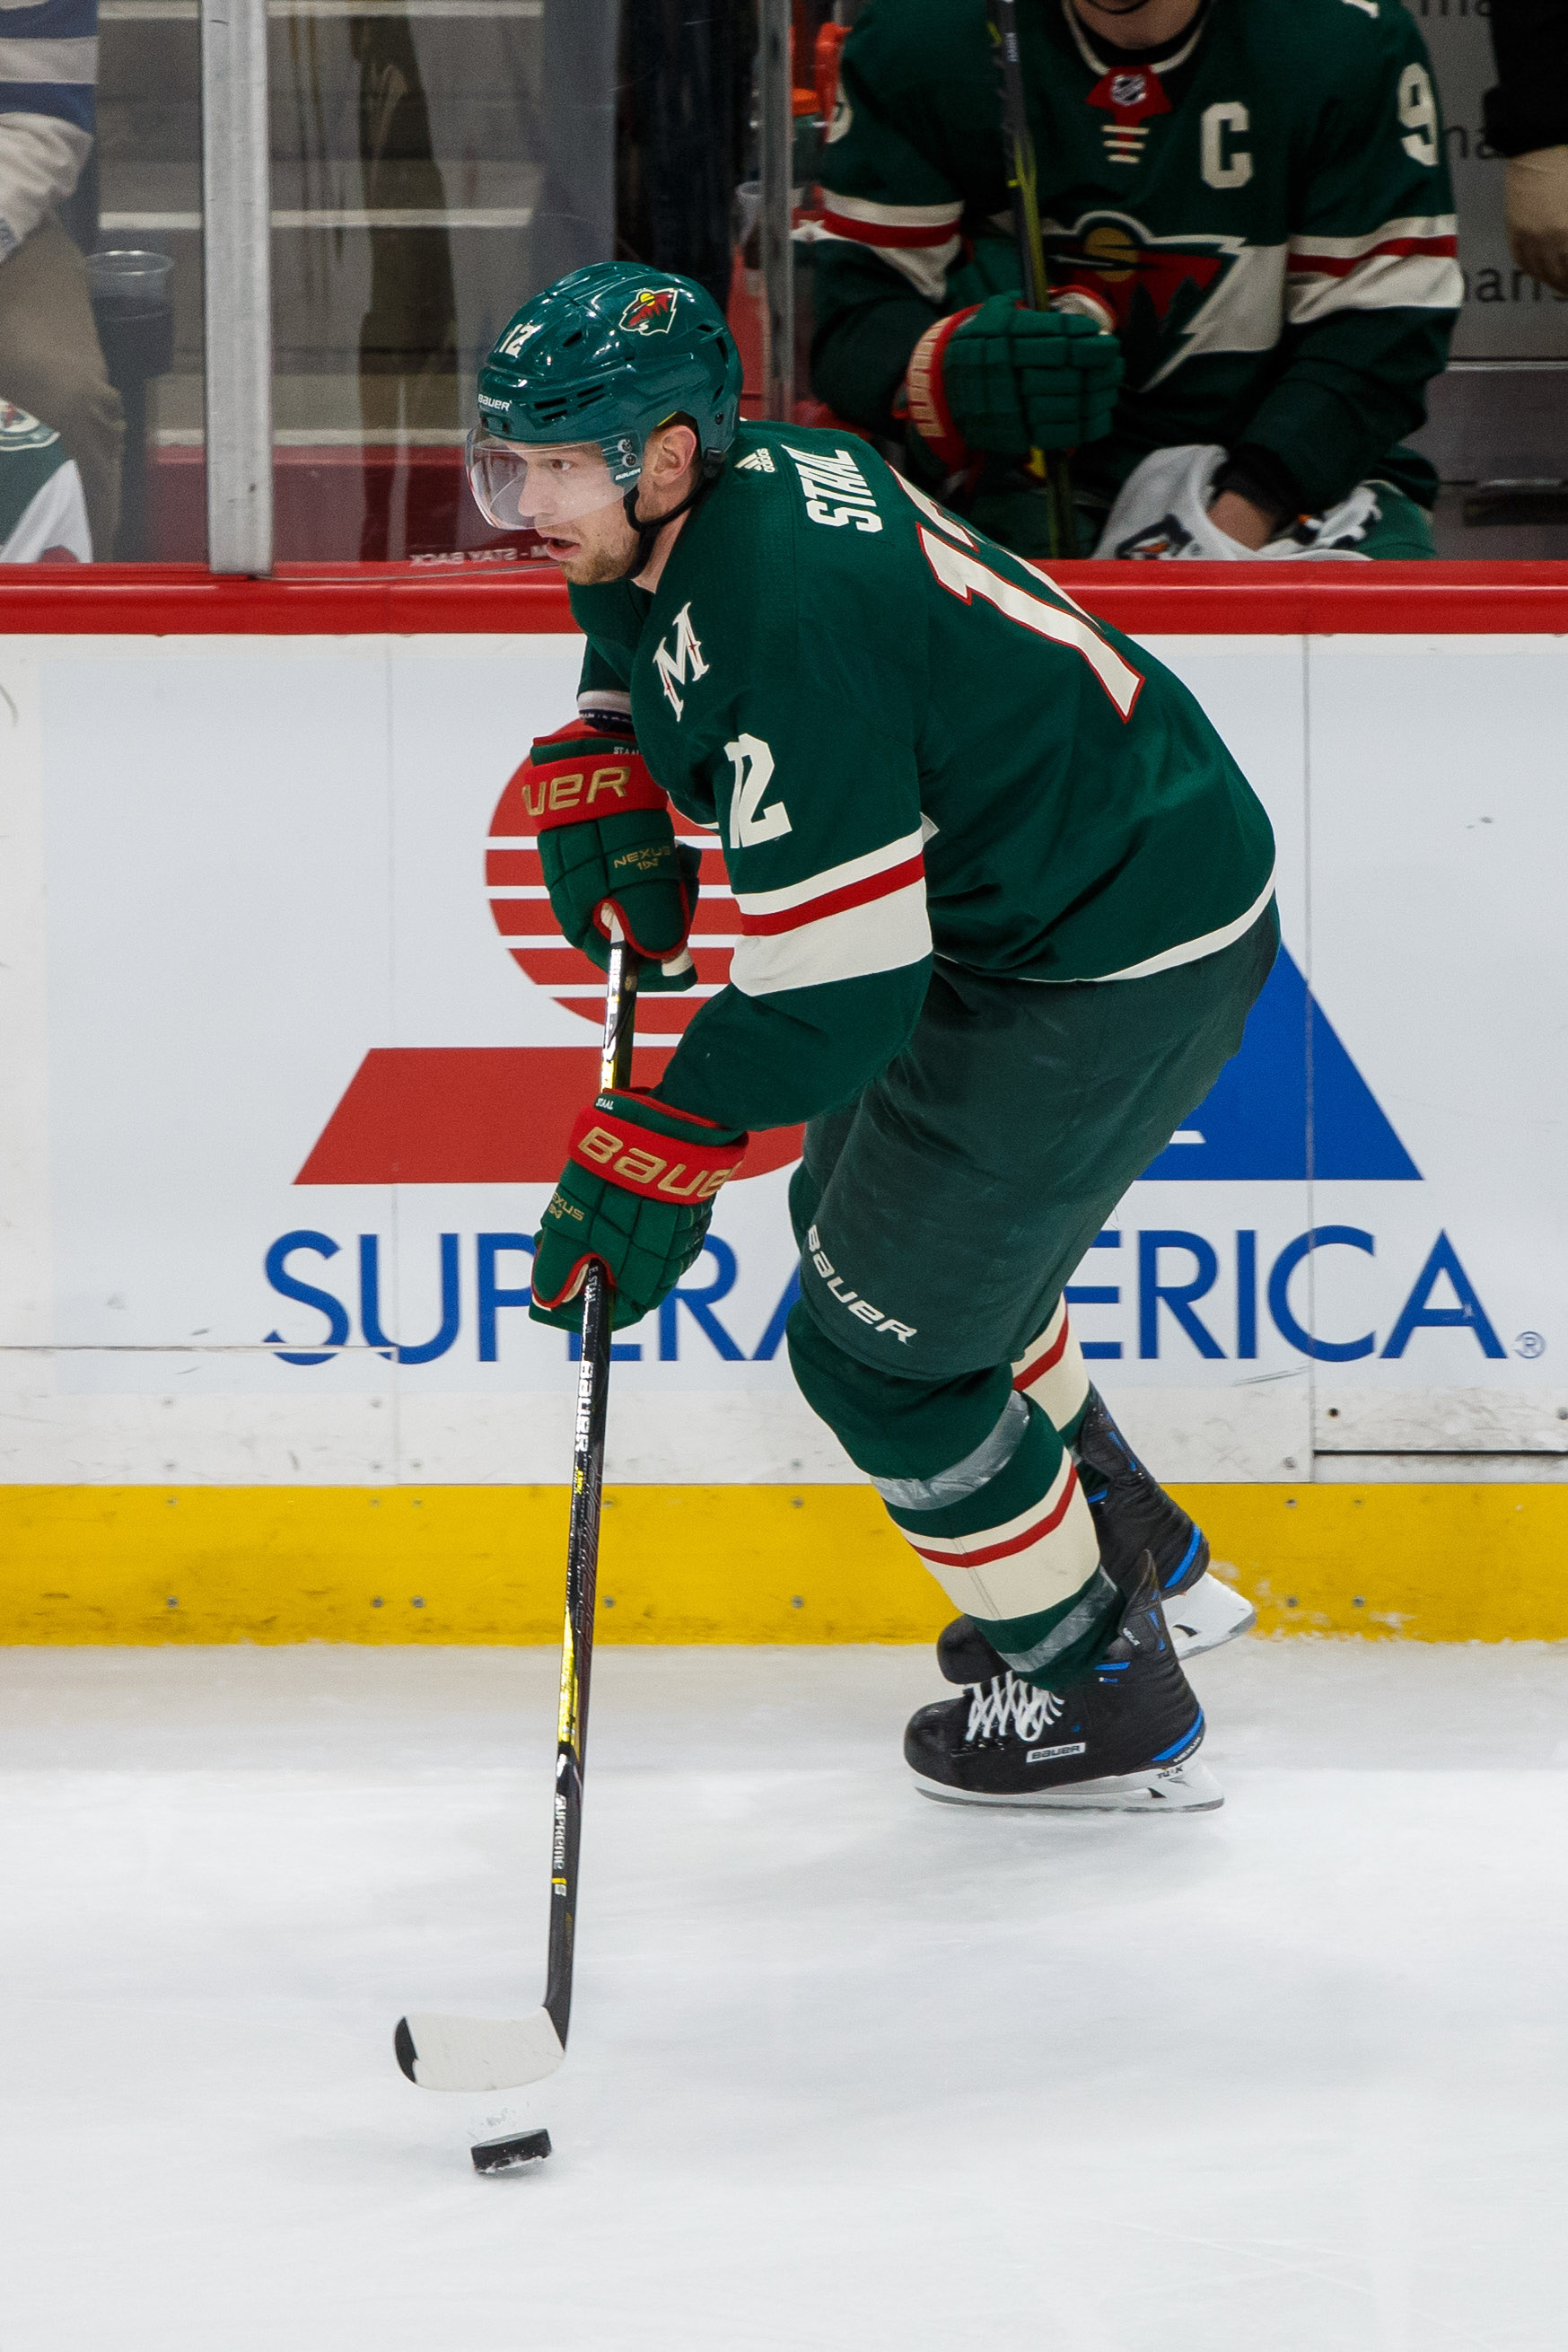 The team will have an interesting decision to make on Staal at the end of  this season. Staal f6c2799be